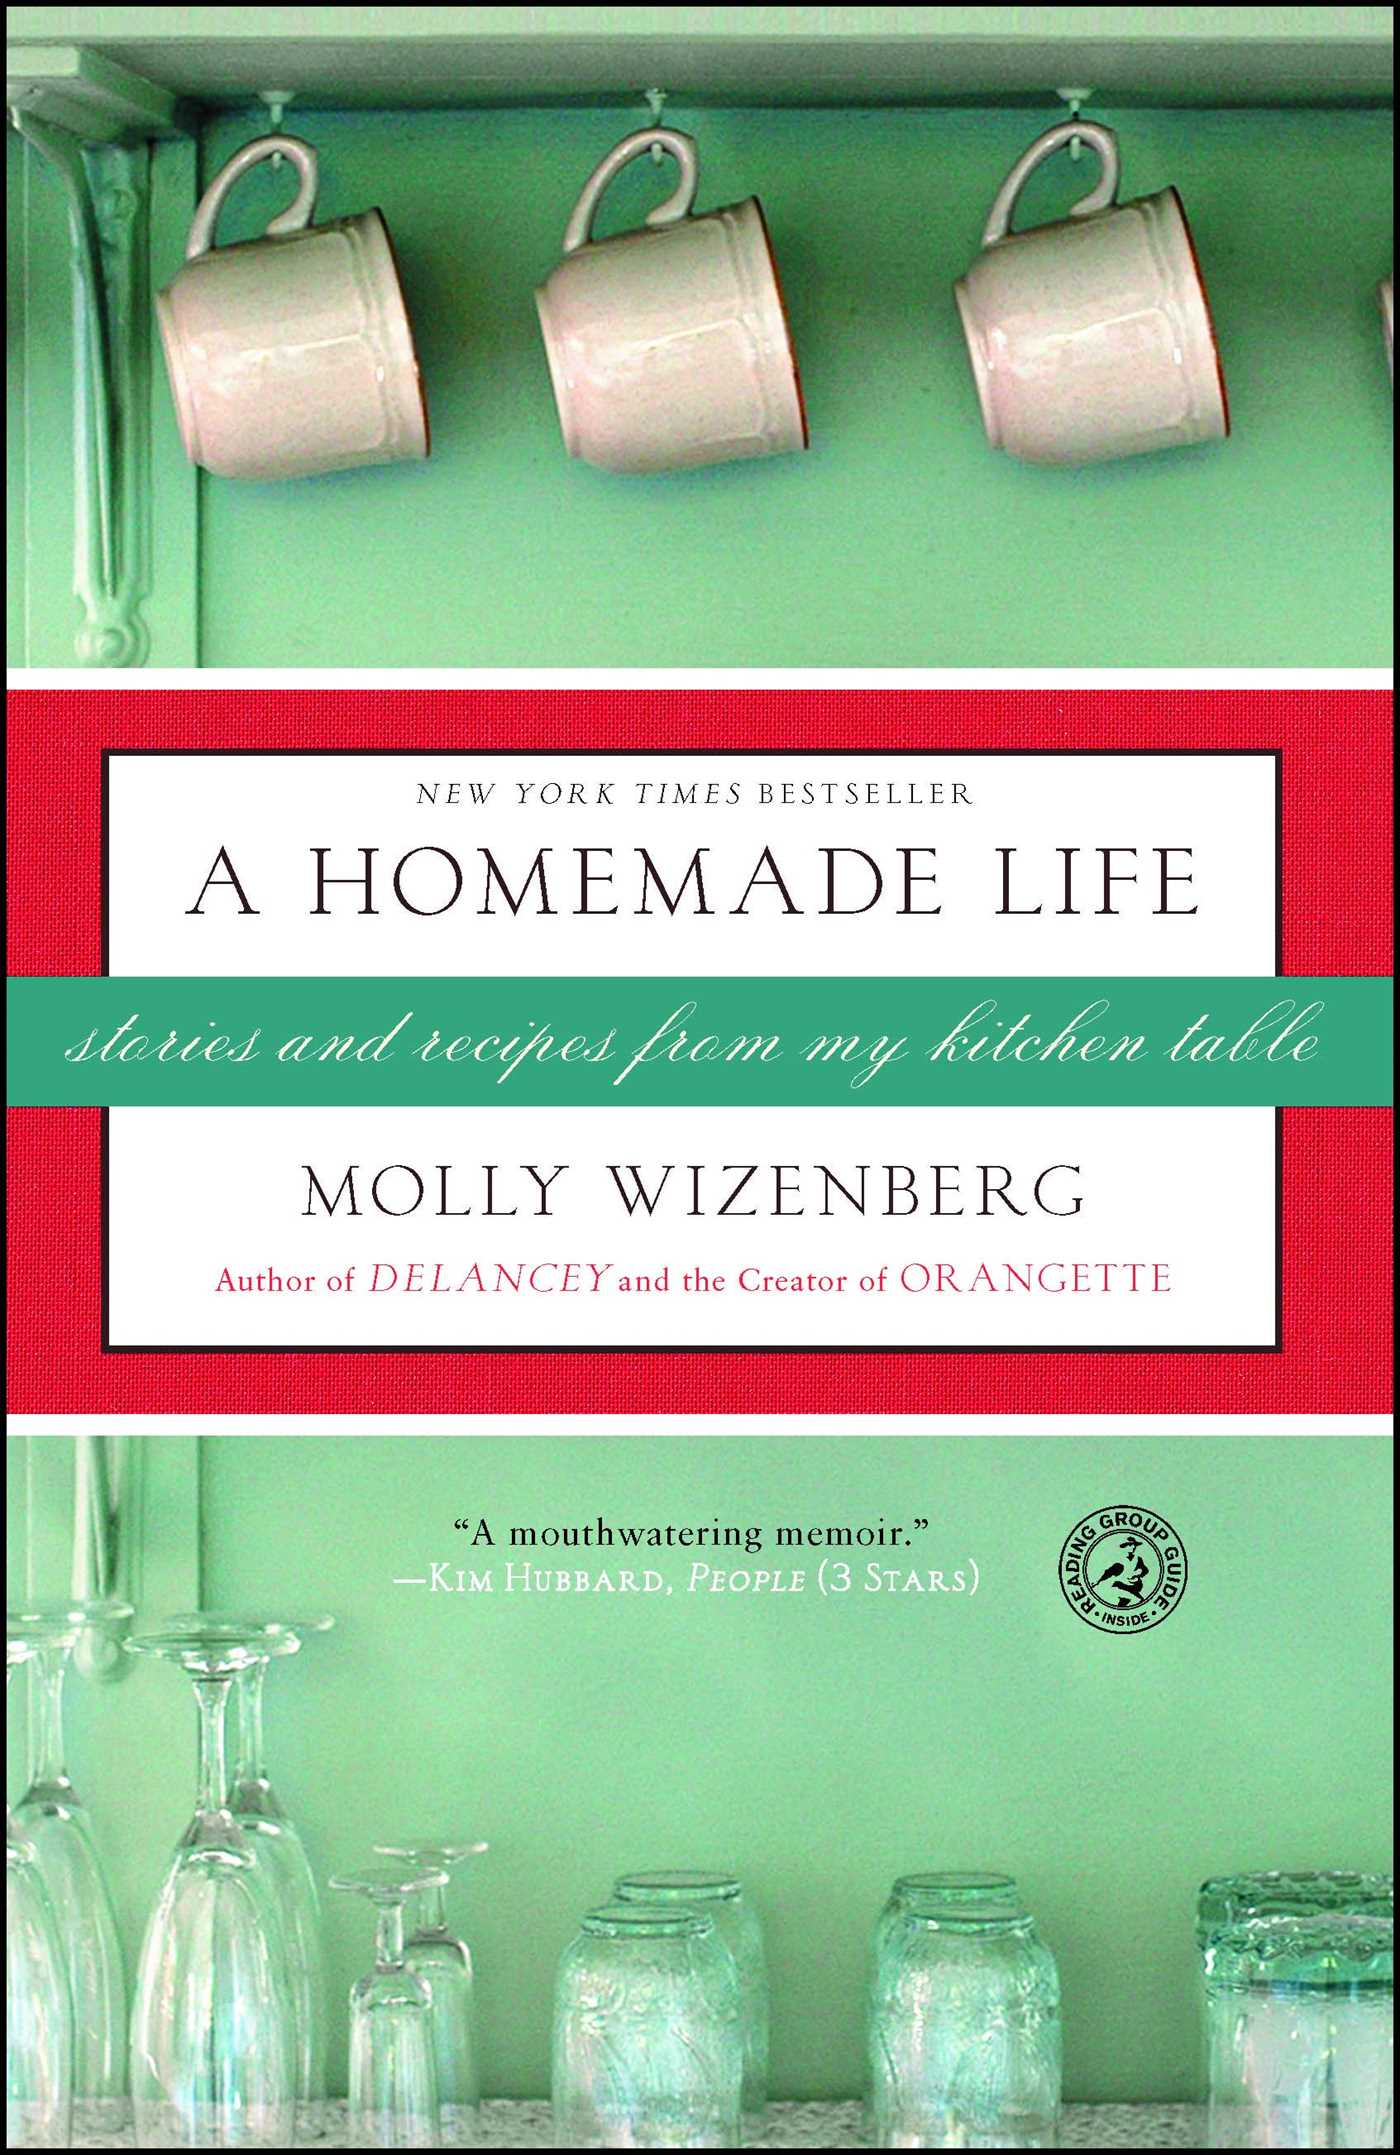 A homemade life 9781416551065 hr